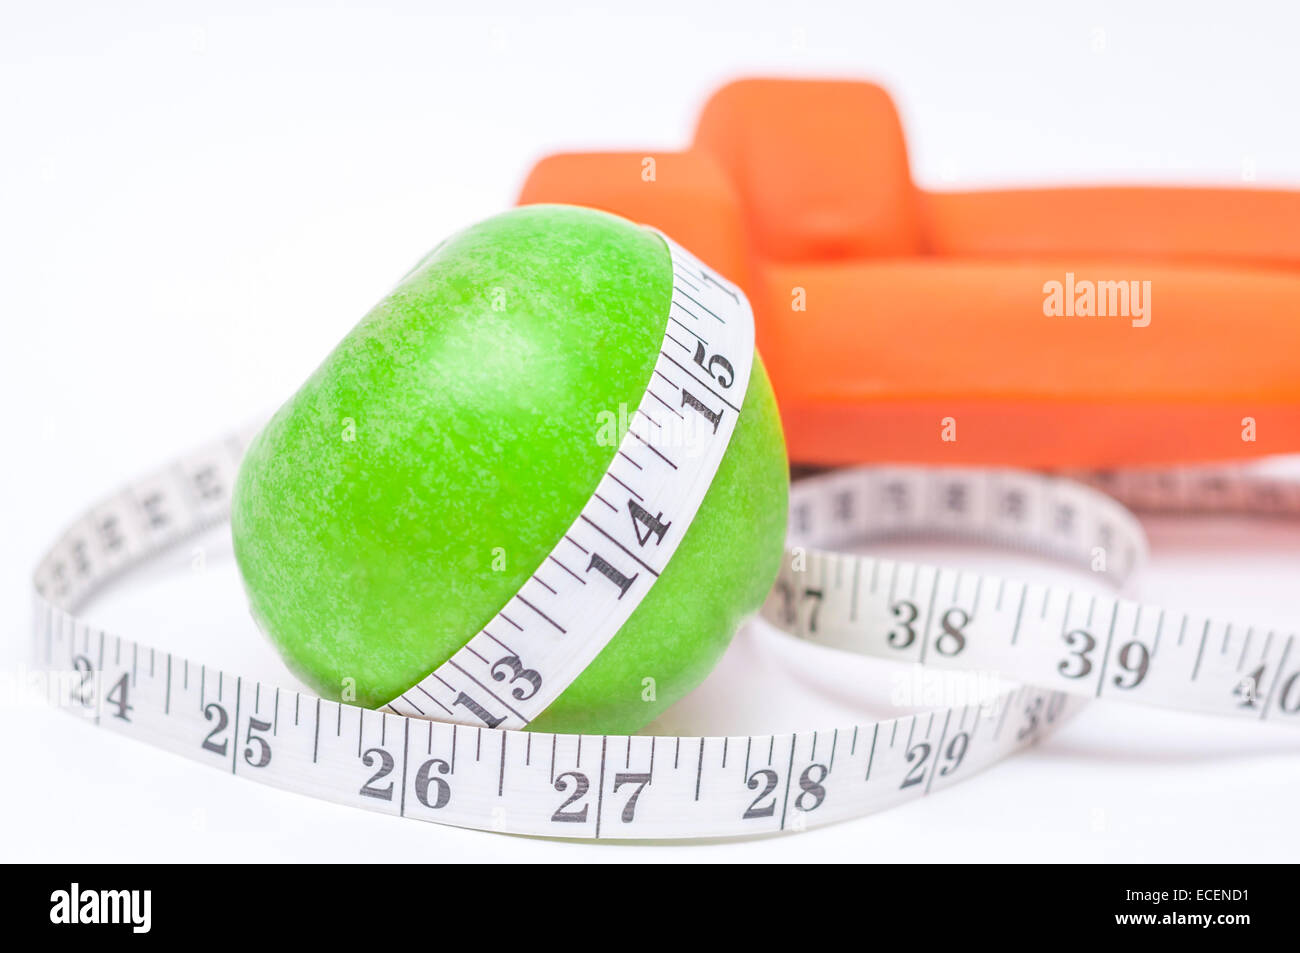 Diet diabetes weight loss concept with tape measure organic green apple and yellow dumbbells on a white background - Stock Image